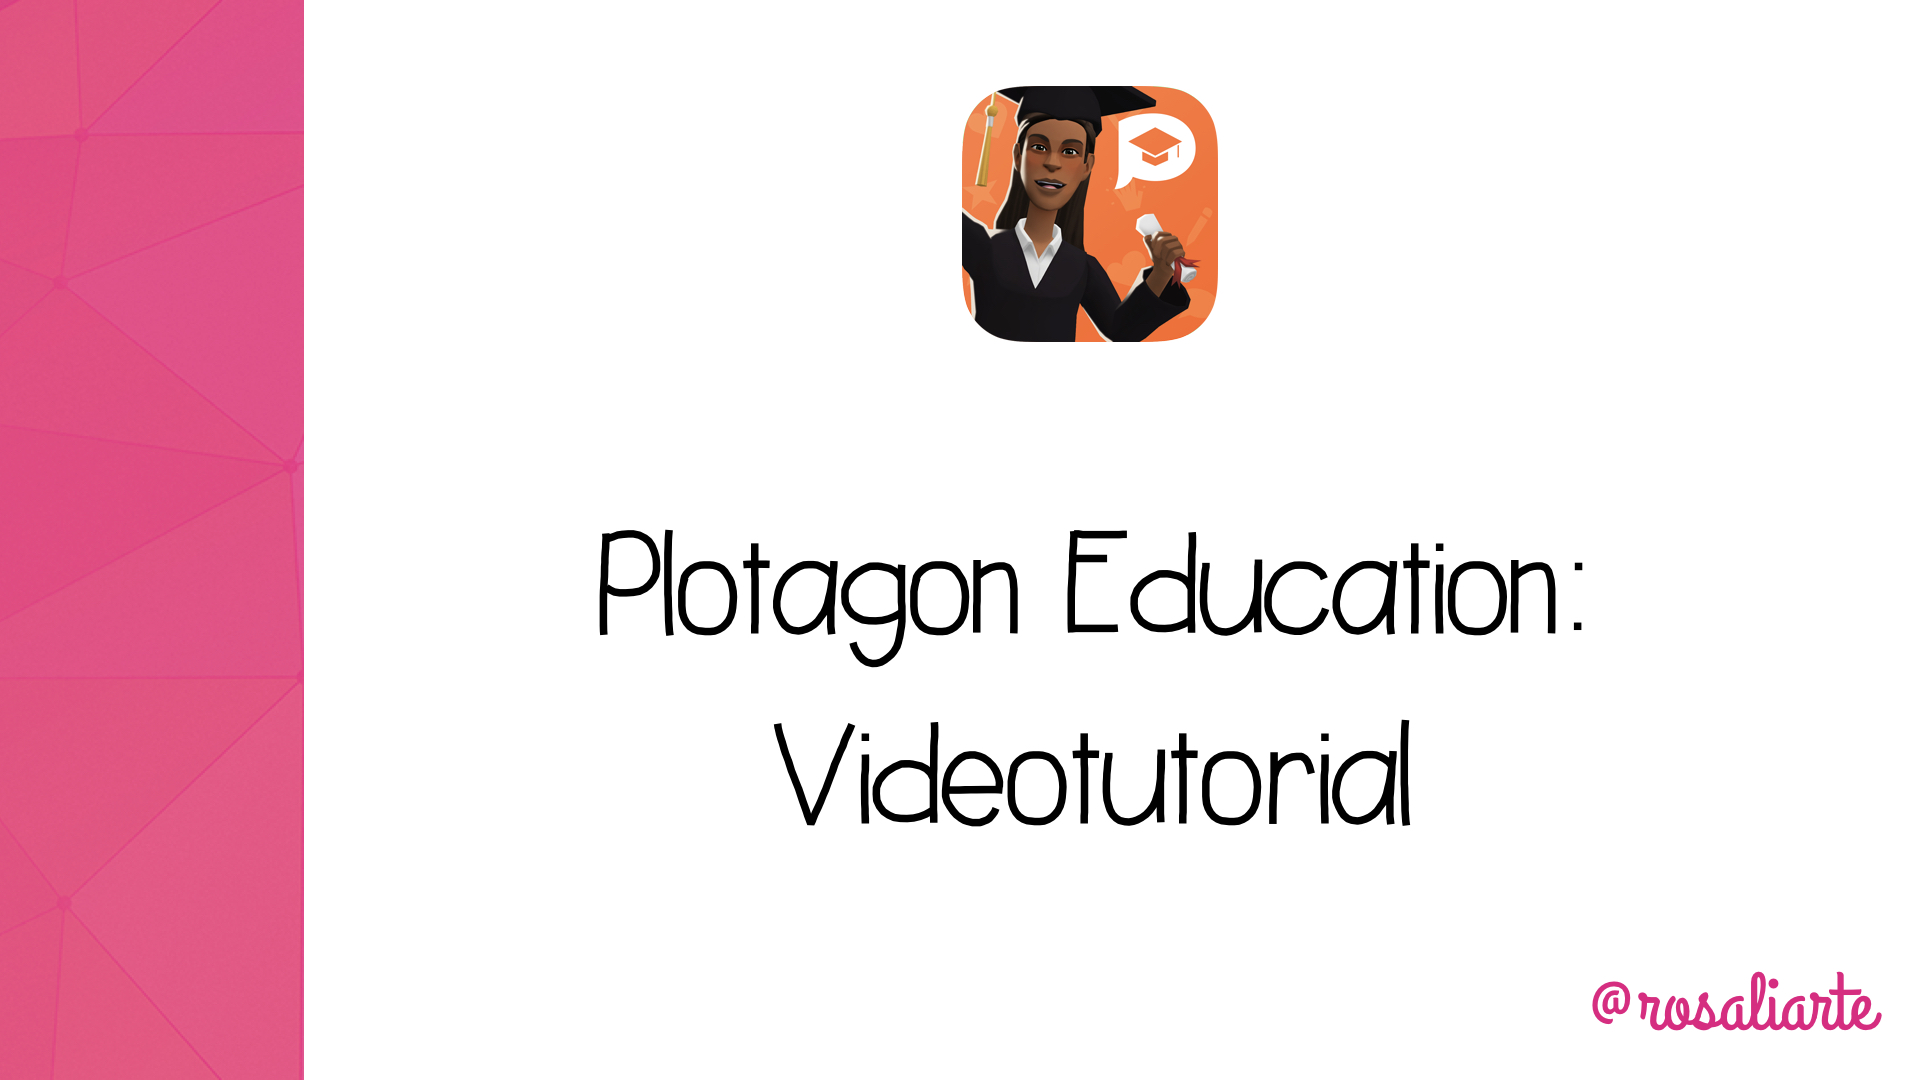 Cómo hacer vídeos animados 3D con Plotagon Education